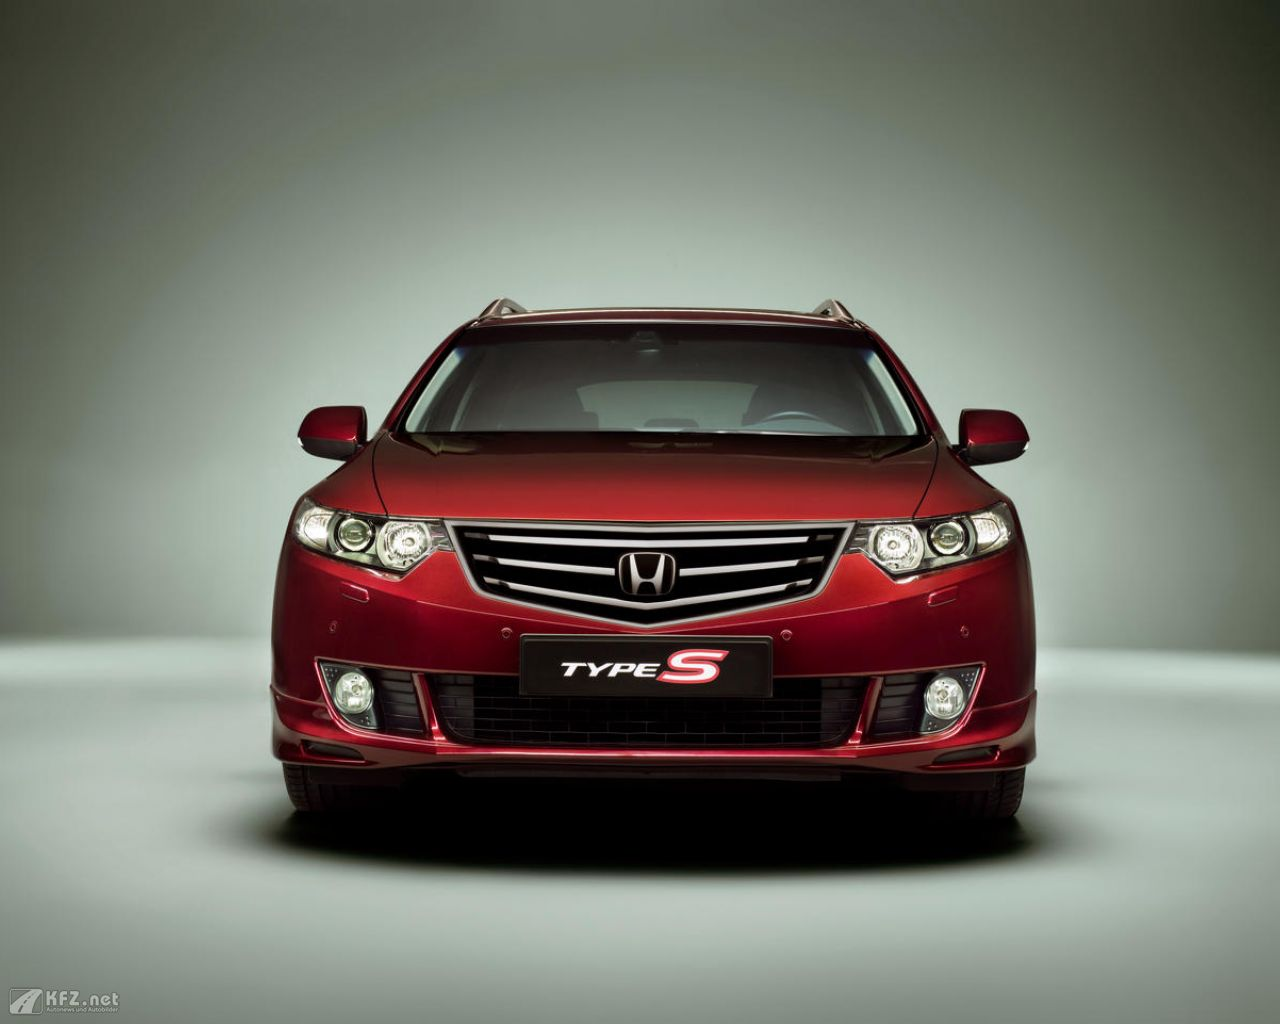 honda-accord-1280x1024-141